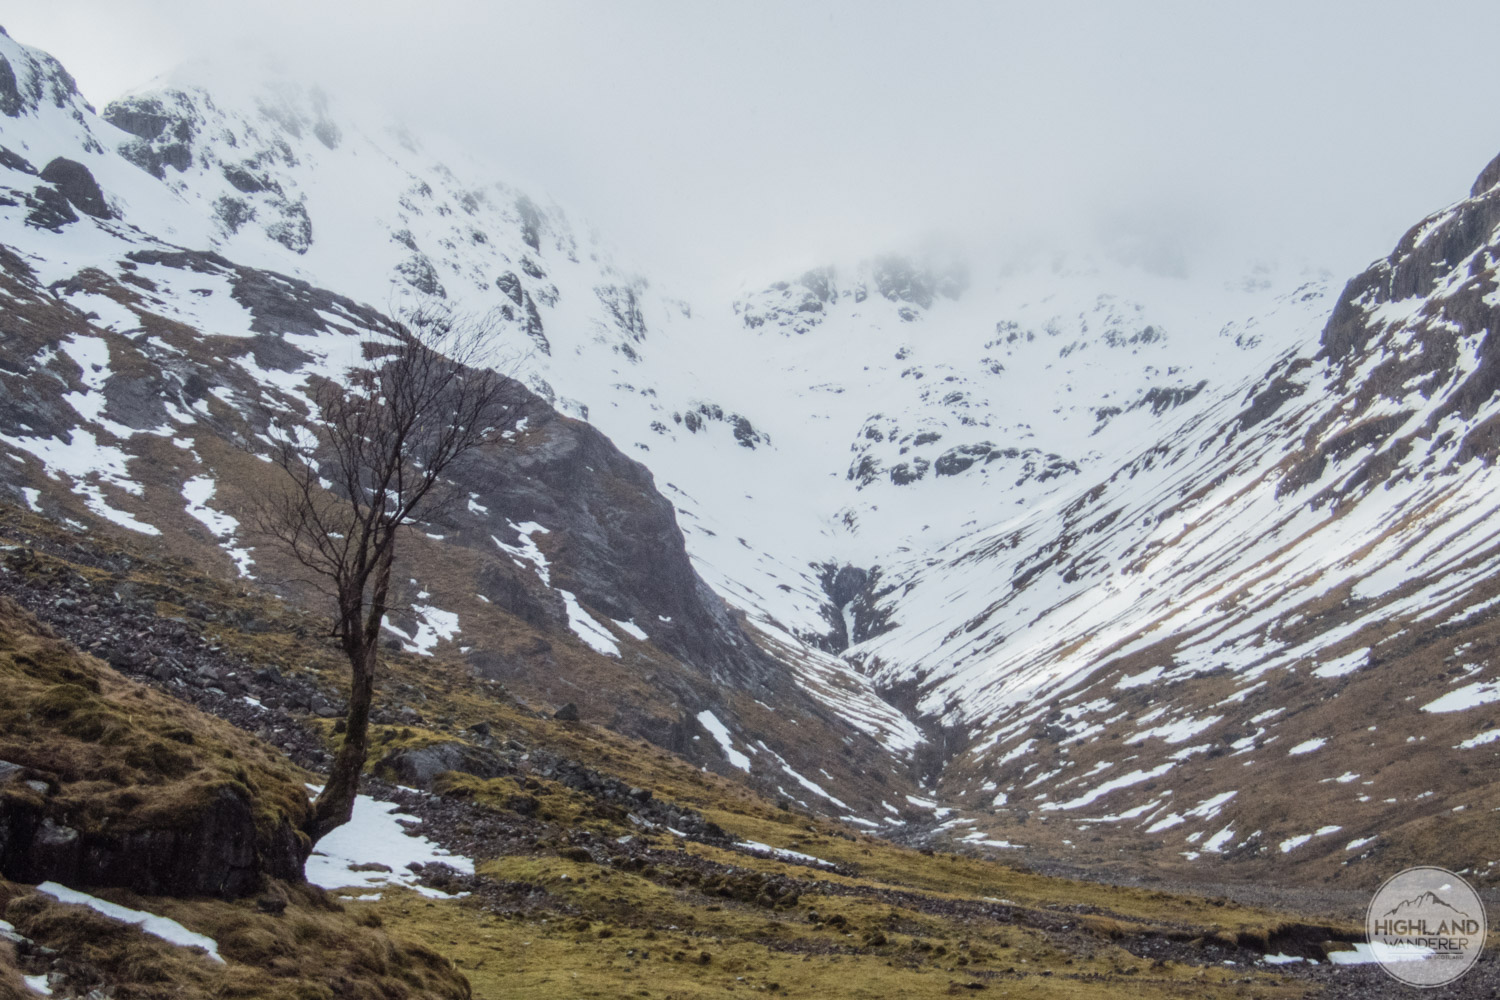 Reaching the Lost Valley with poor conditions up ahead.